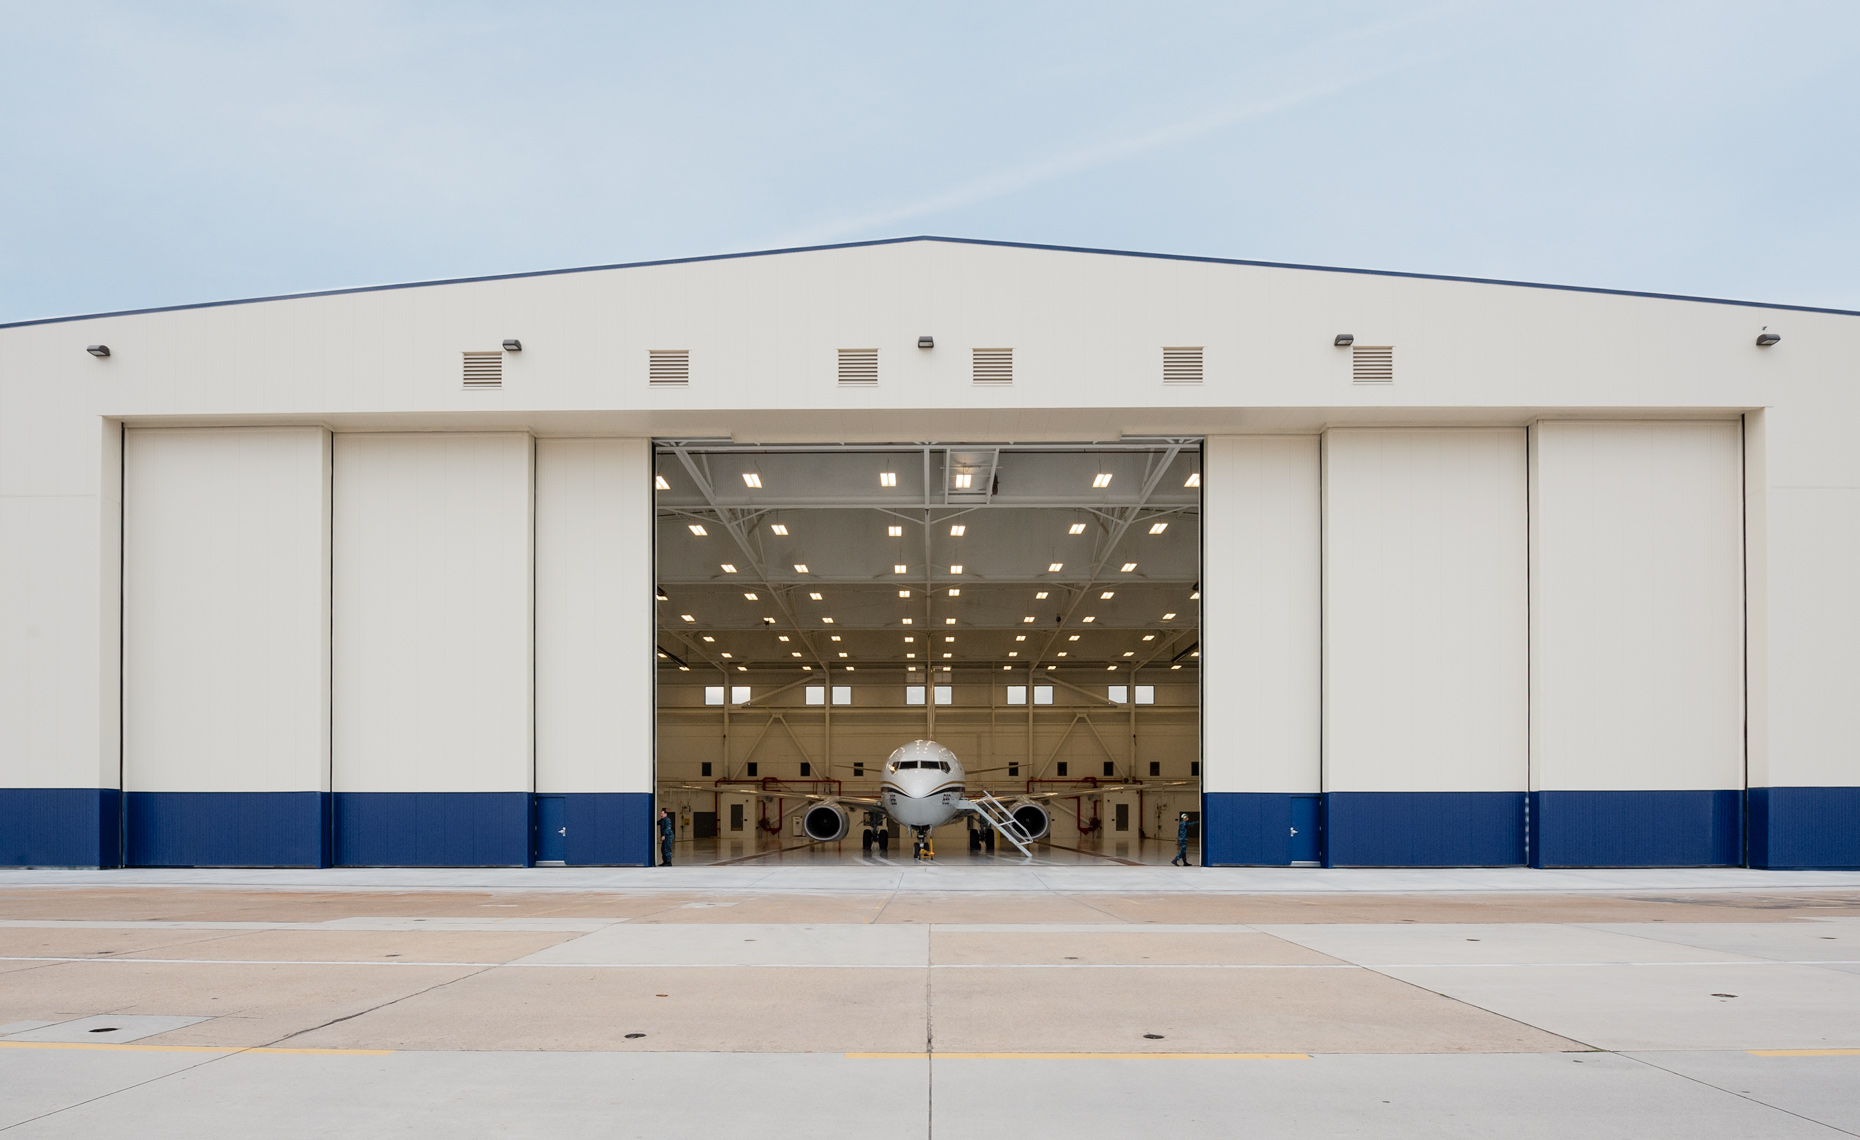 P837 C-40 Maintenance Hangar